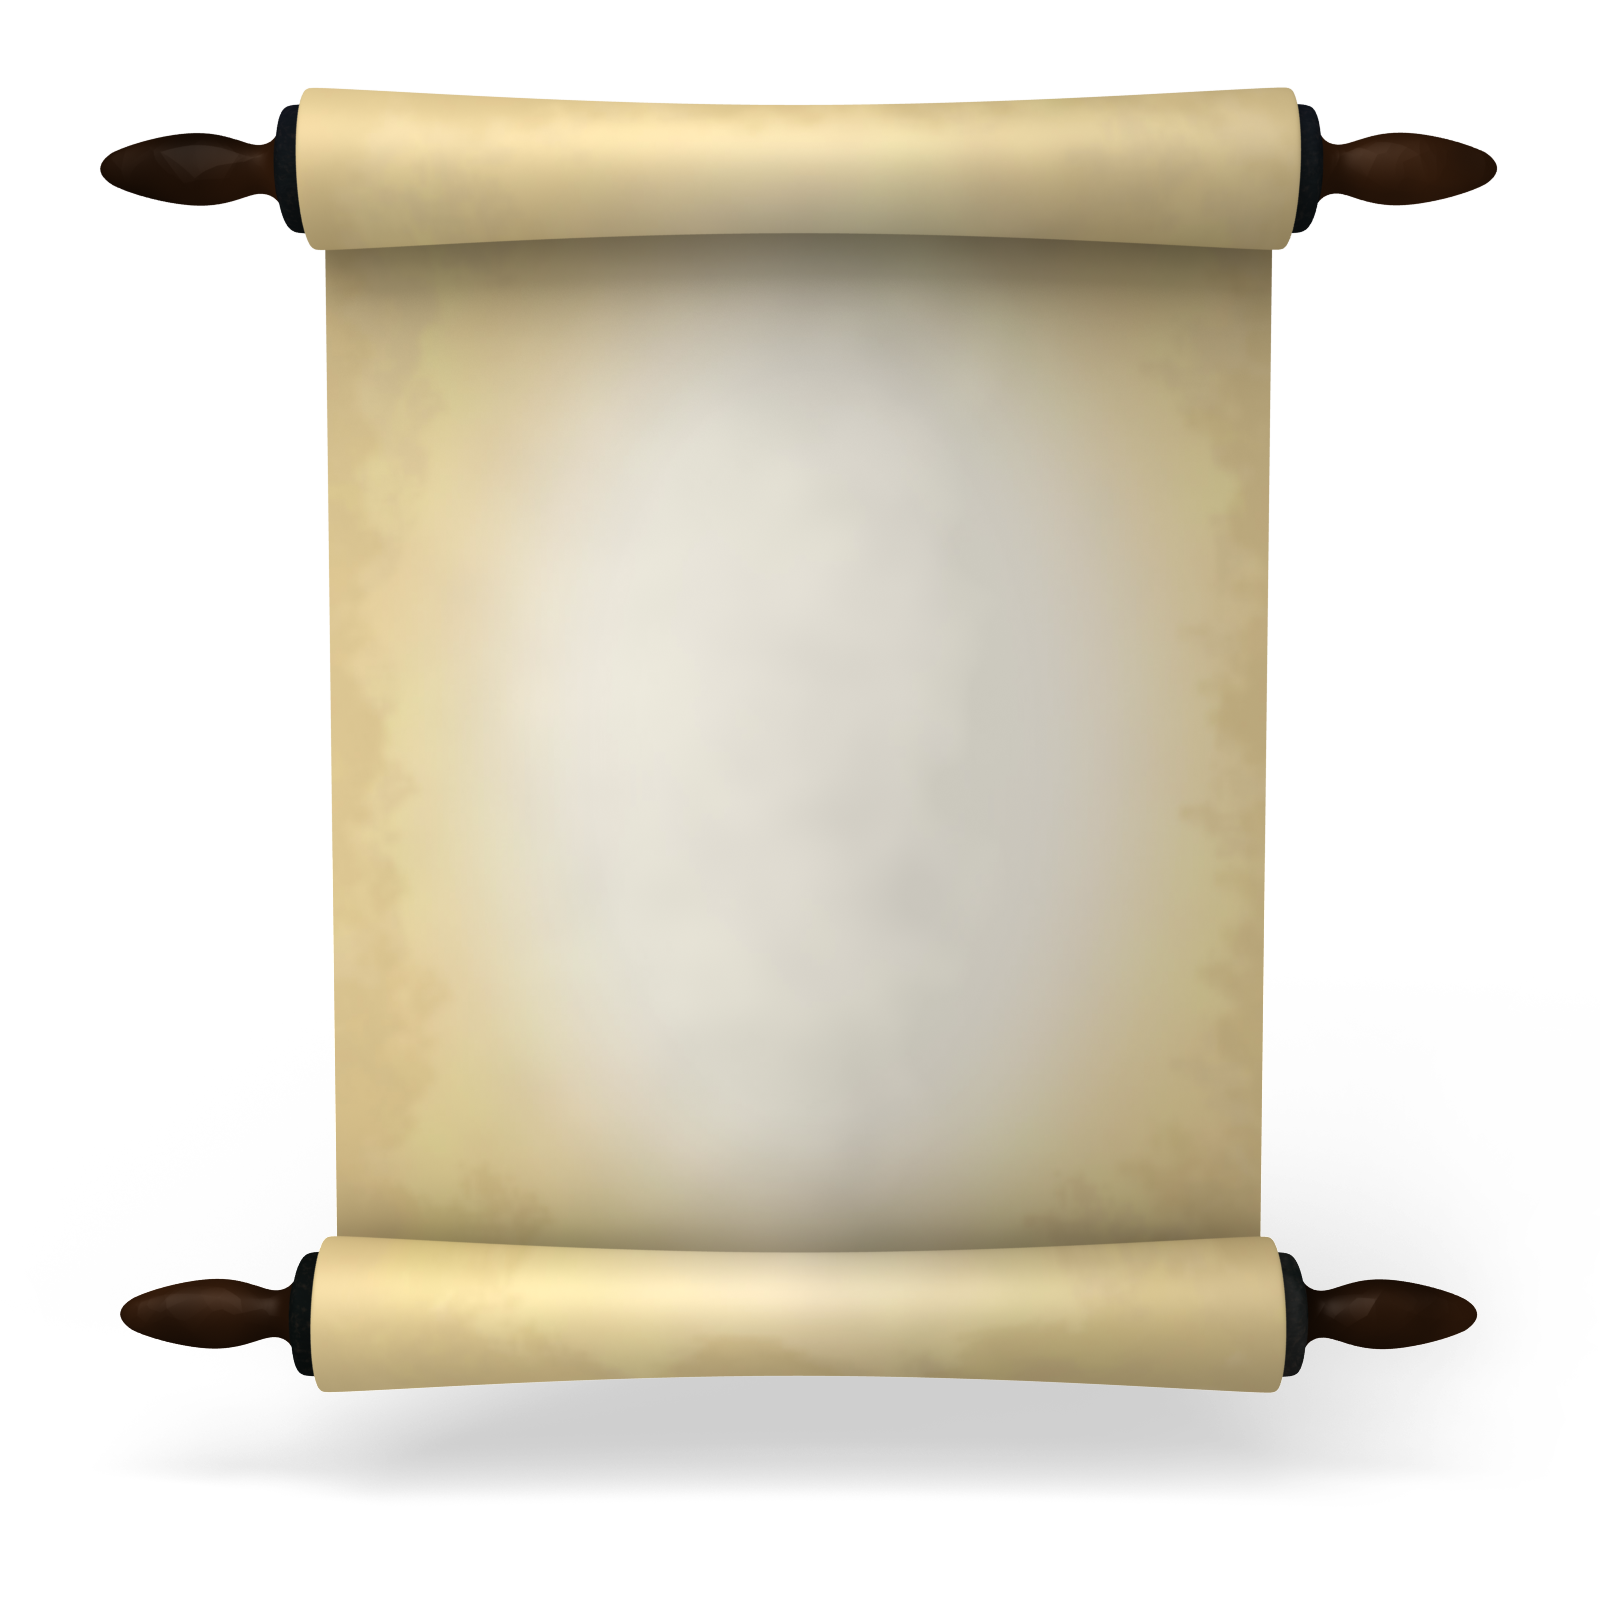 Letter clipart scroll Ancient Scroll Free  Download